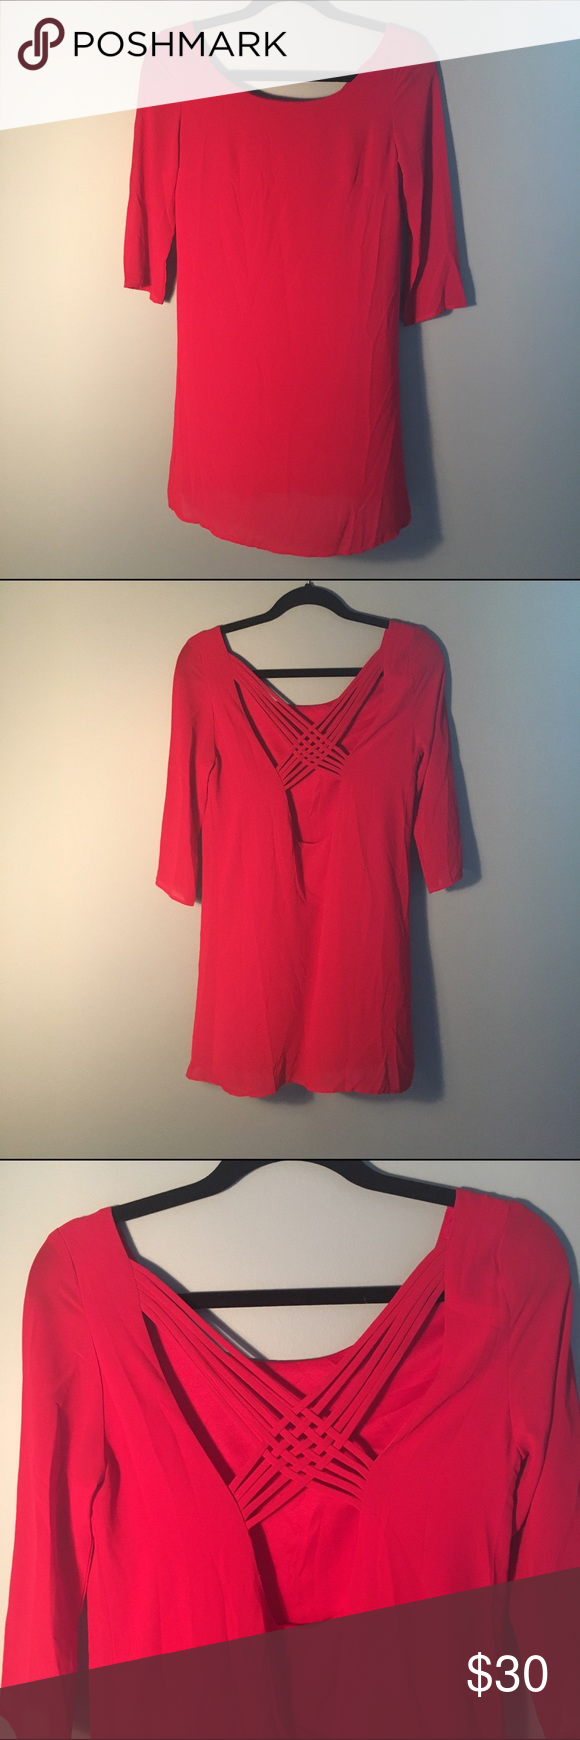 Red threequarter sleeve dress never worn threequarter sleeve red